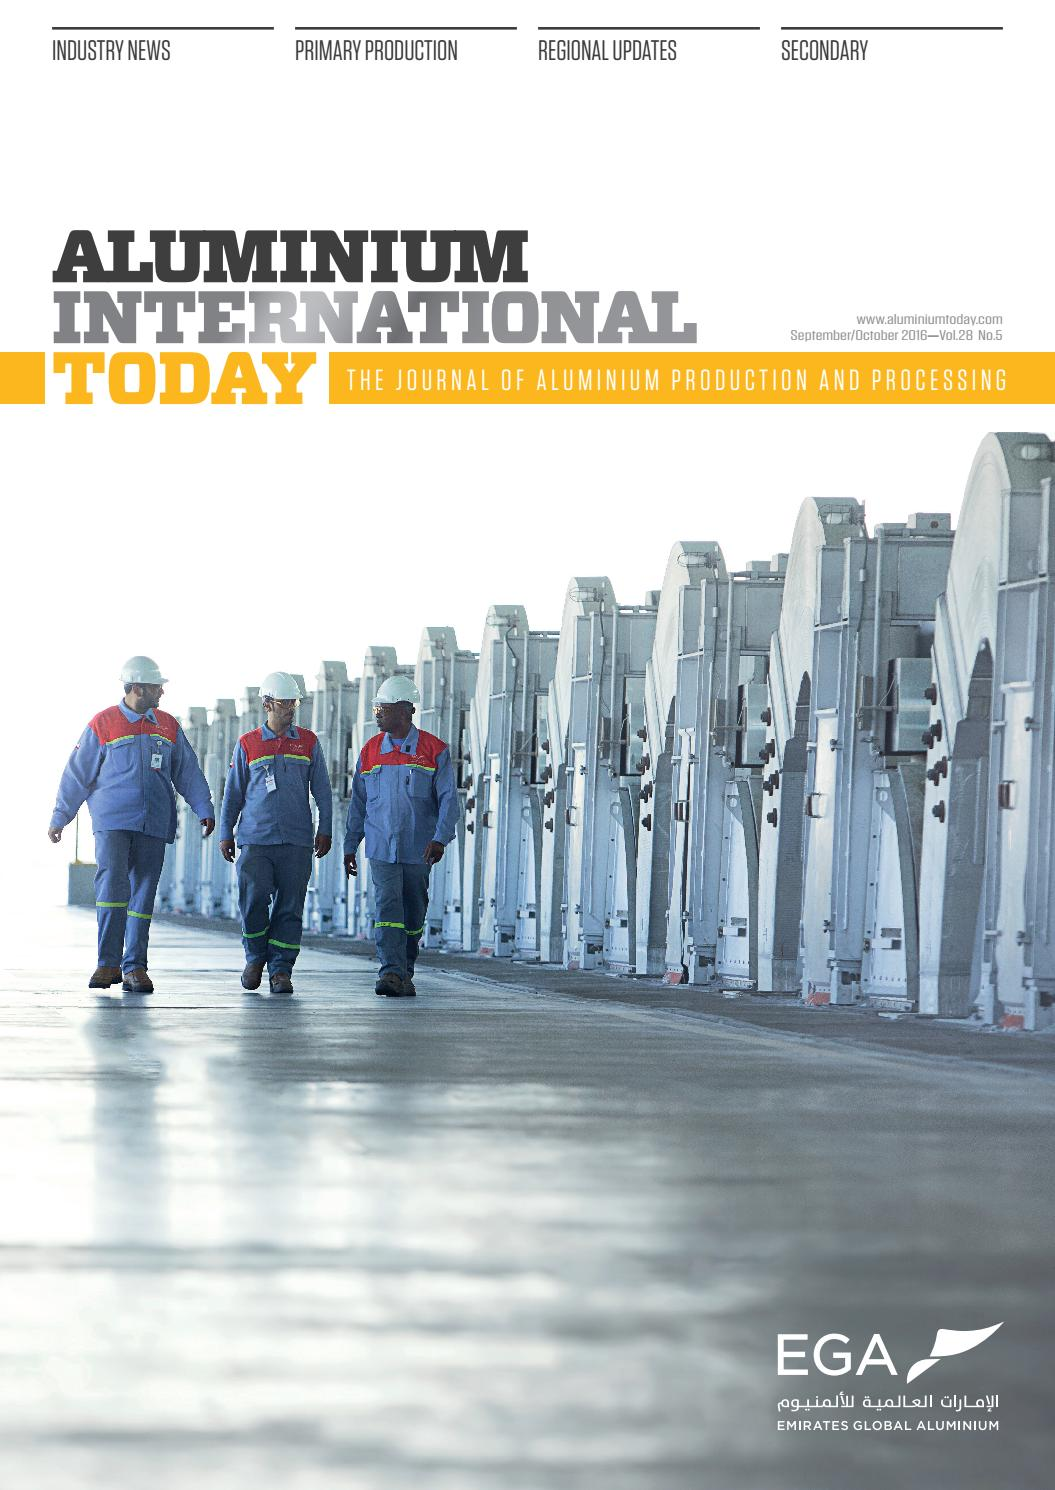 Aluminium International Today Sept Oct 2016 by Quartz - issuu